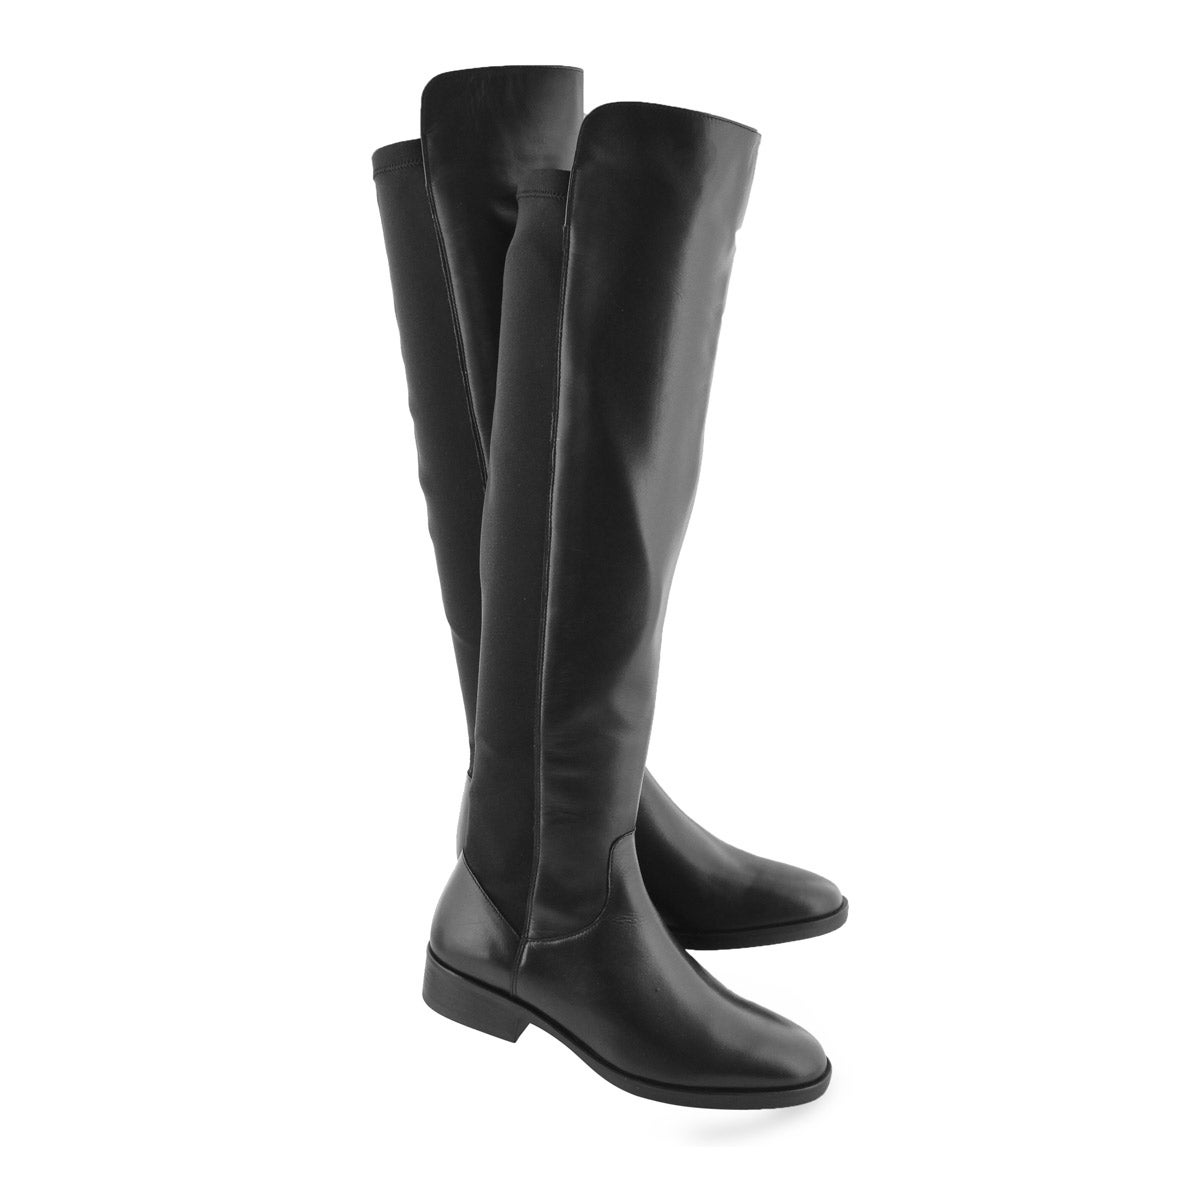 Cuissardes PURE CADDY noires, cuir, femmes